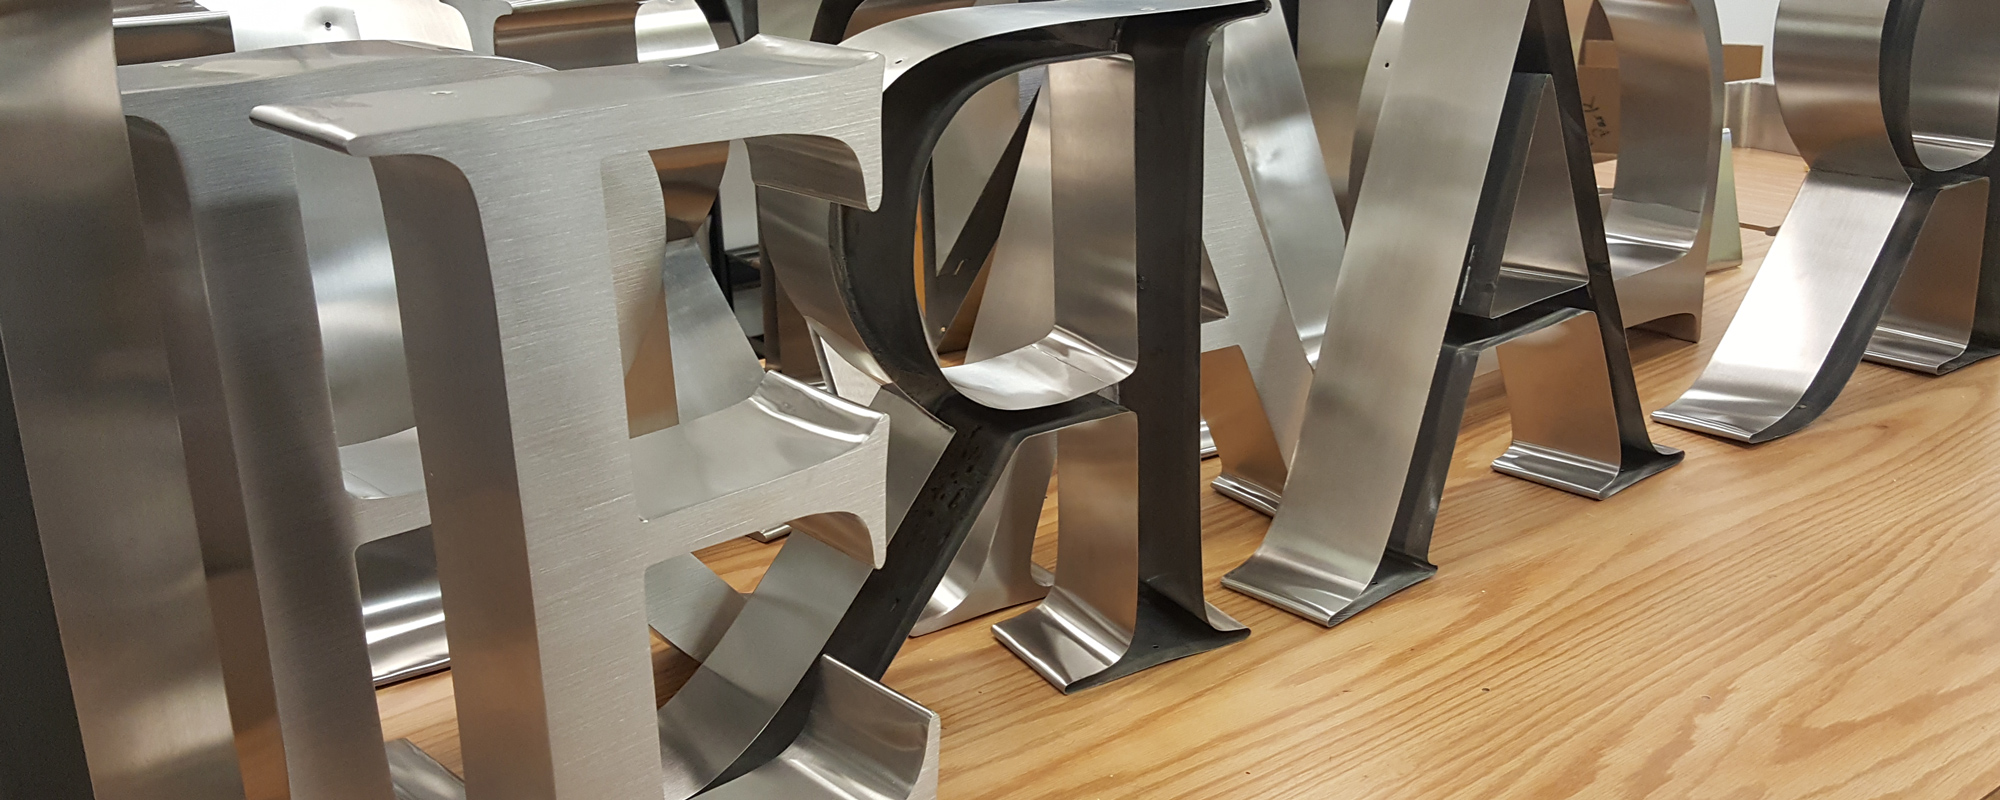 Stainless steel channel letters with brushed faces standing on table top